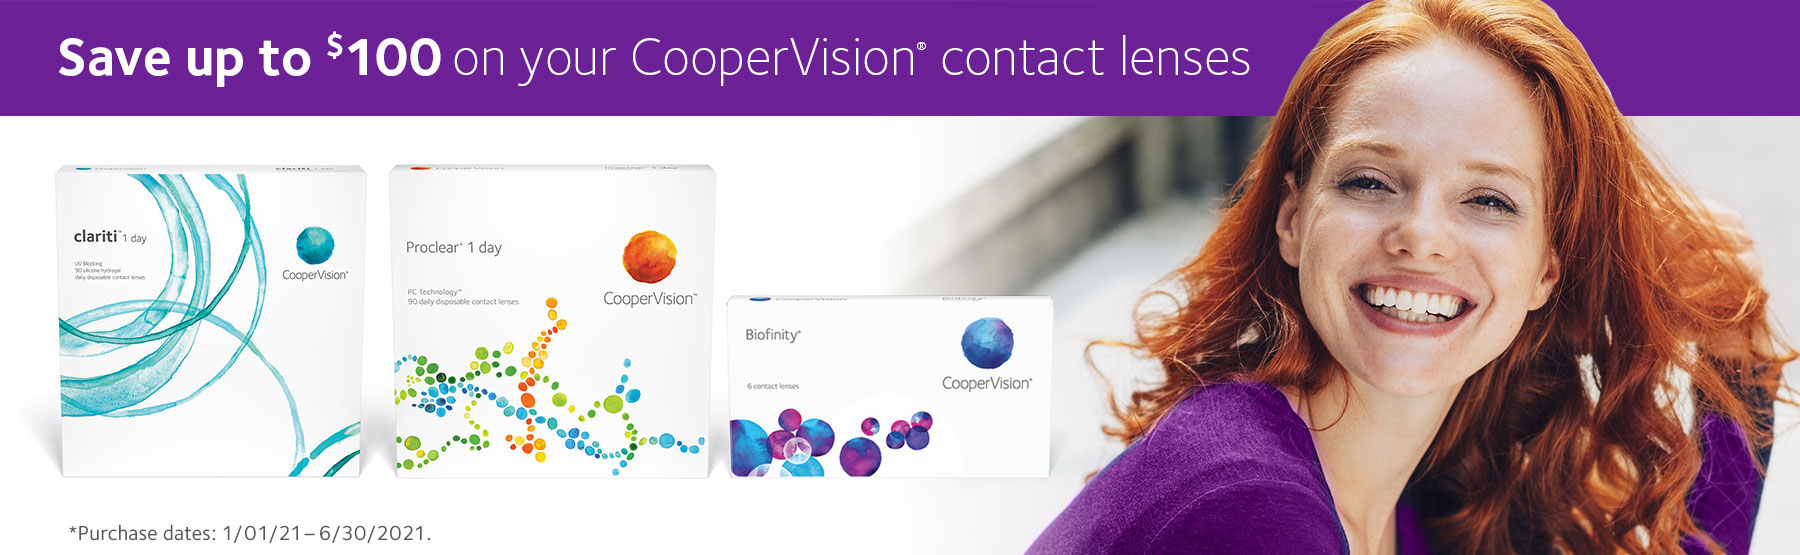 Save up to $100 on your CooperVision contact lenses